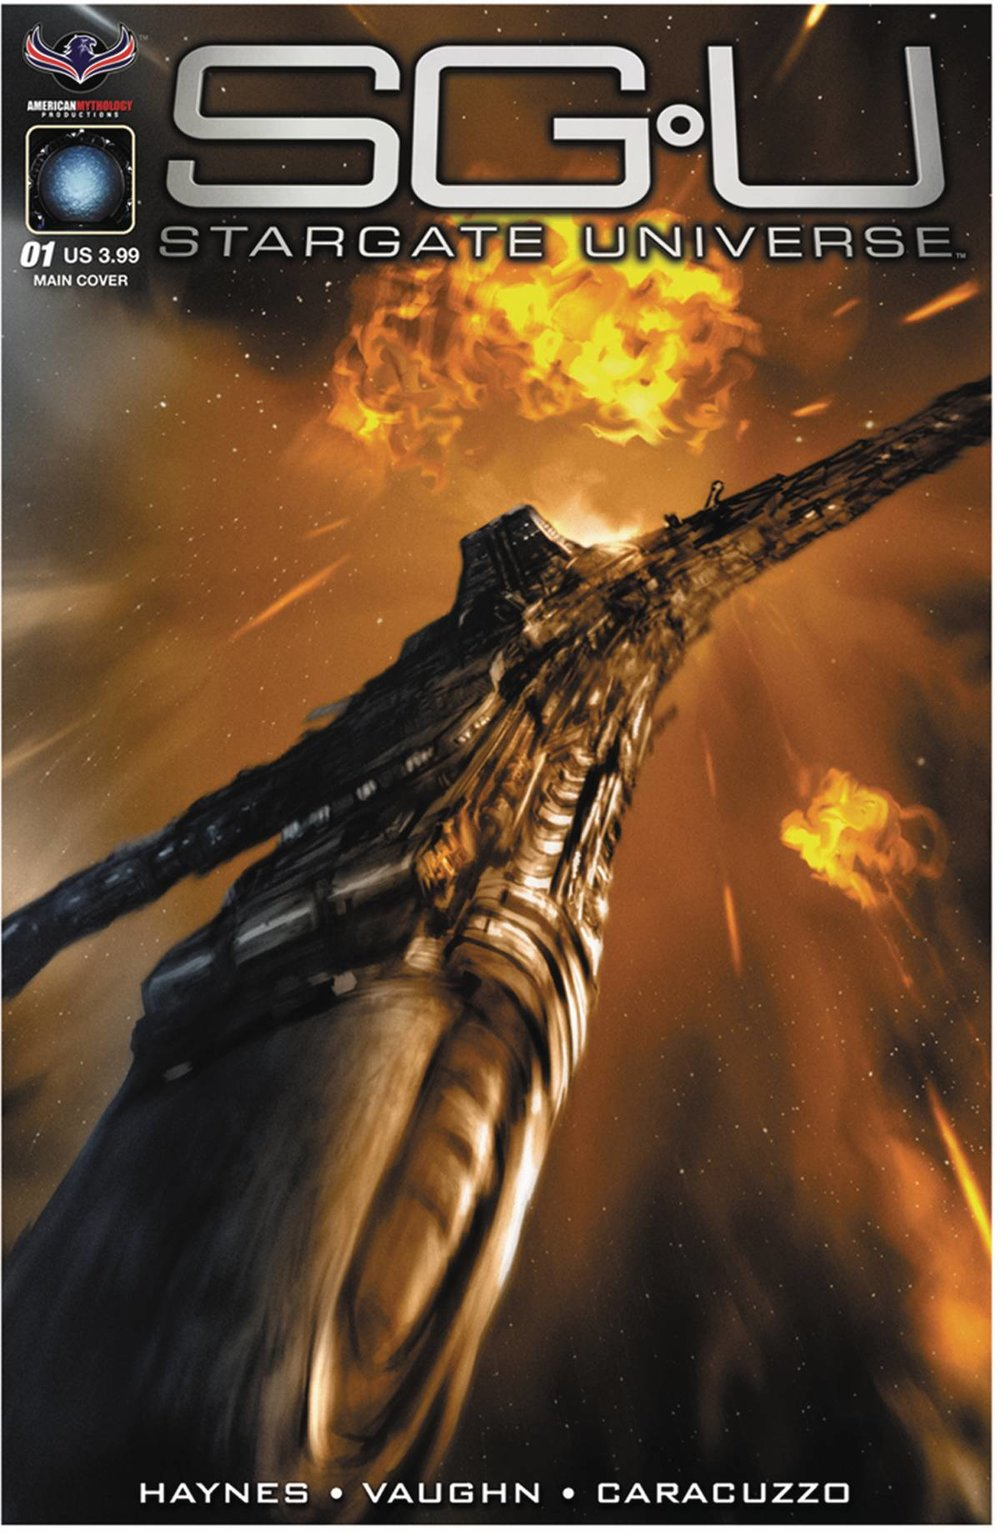 STARGATE UNIVERSE BACK TO DESTINY 1 SCALF CVR.jpg